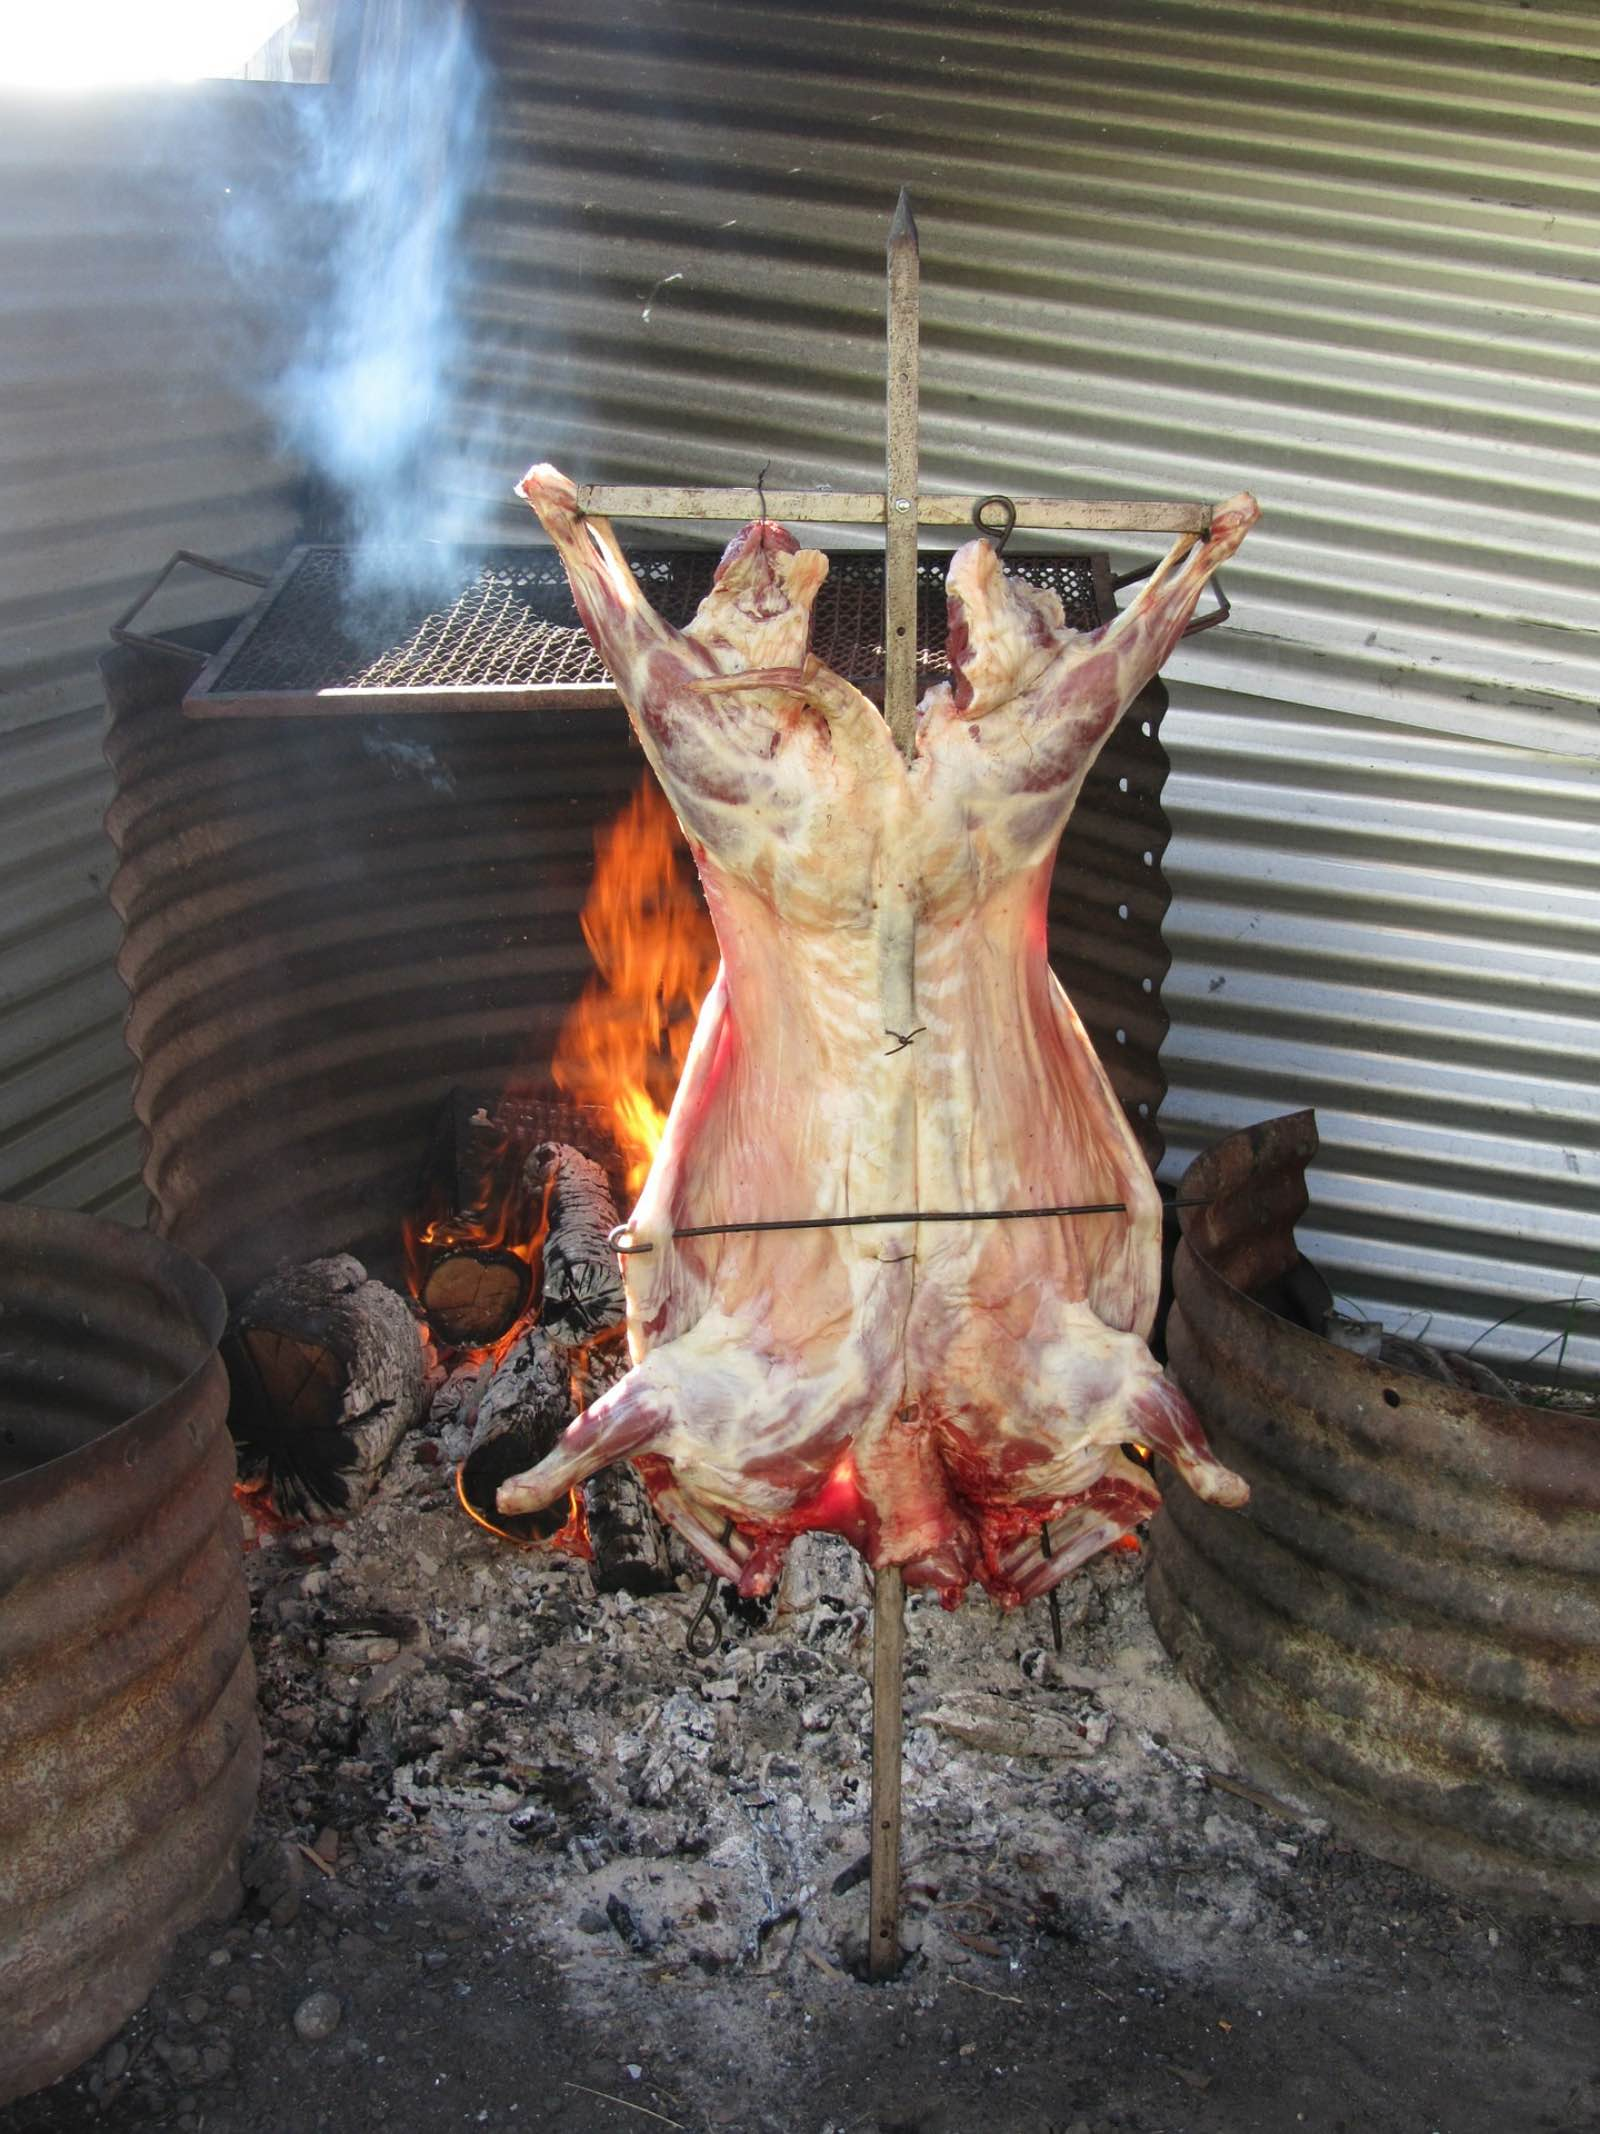 Patagonian barbecue is traditionally a sheep on a rotisserie turning next to hot coals. One for the carnivores!